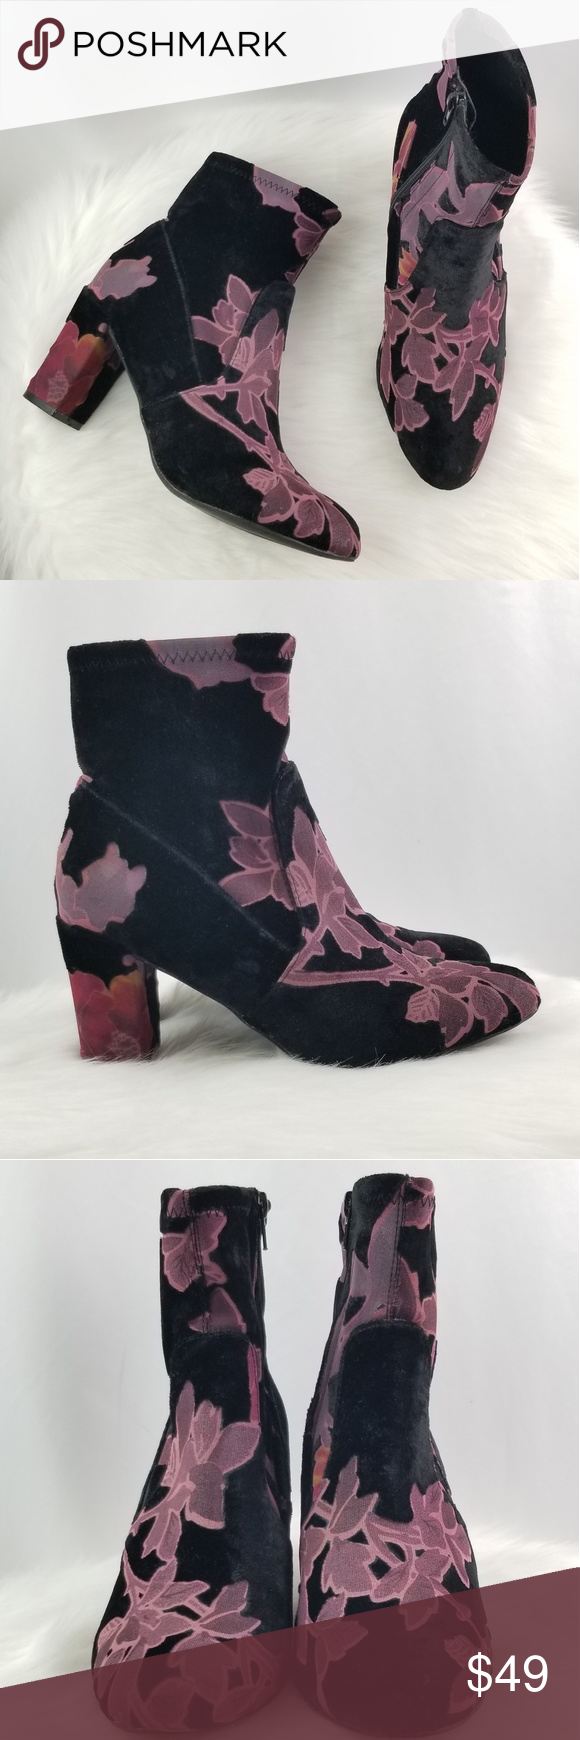 da09e2666ab Steve Madden Emison-V Velvet Ankle Block Boots Give a whimsical touch to  your fashionista look with this bootie from Steve Madden.